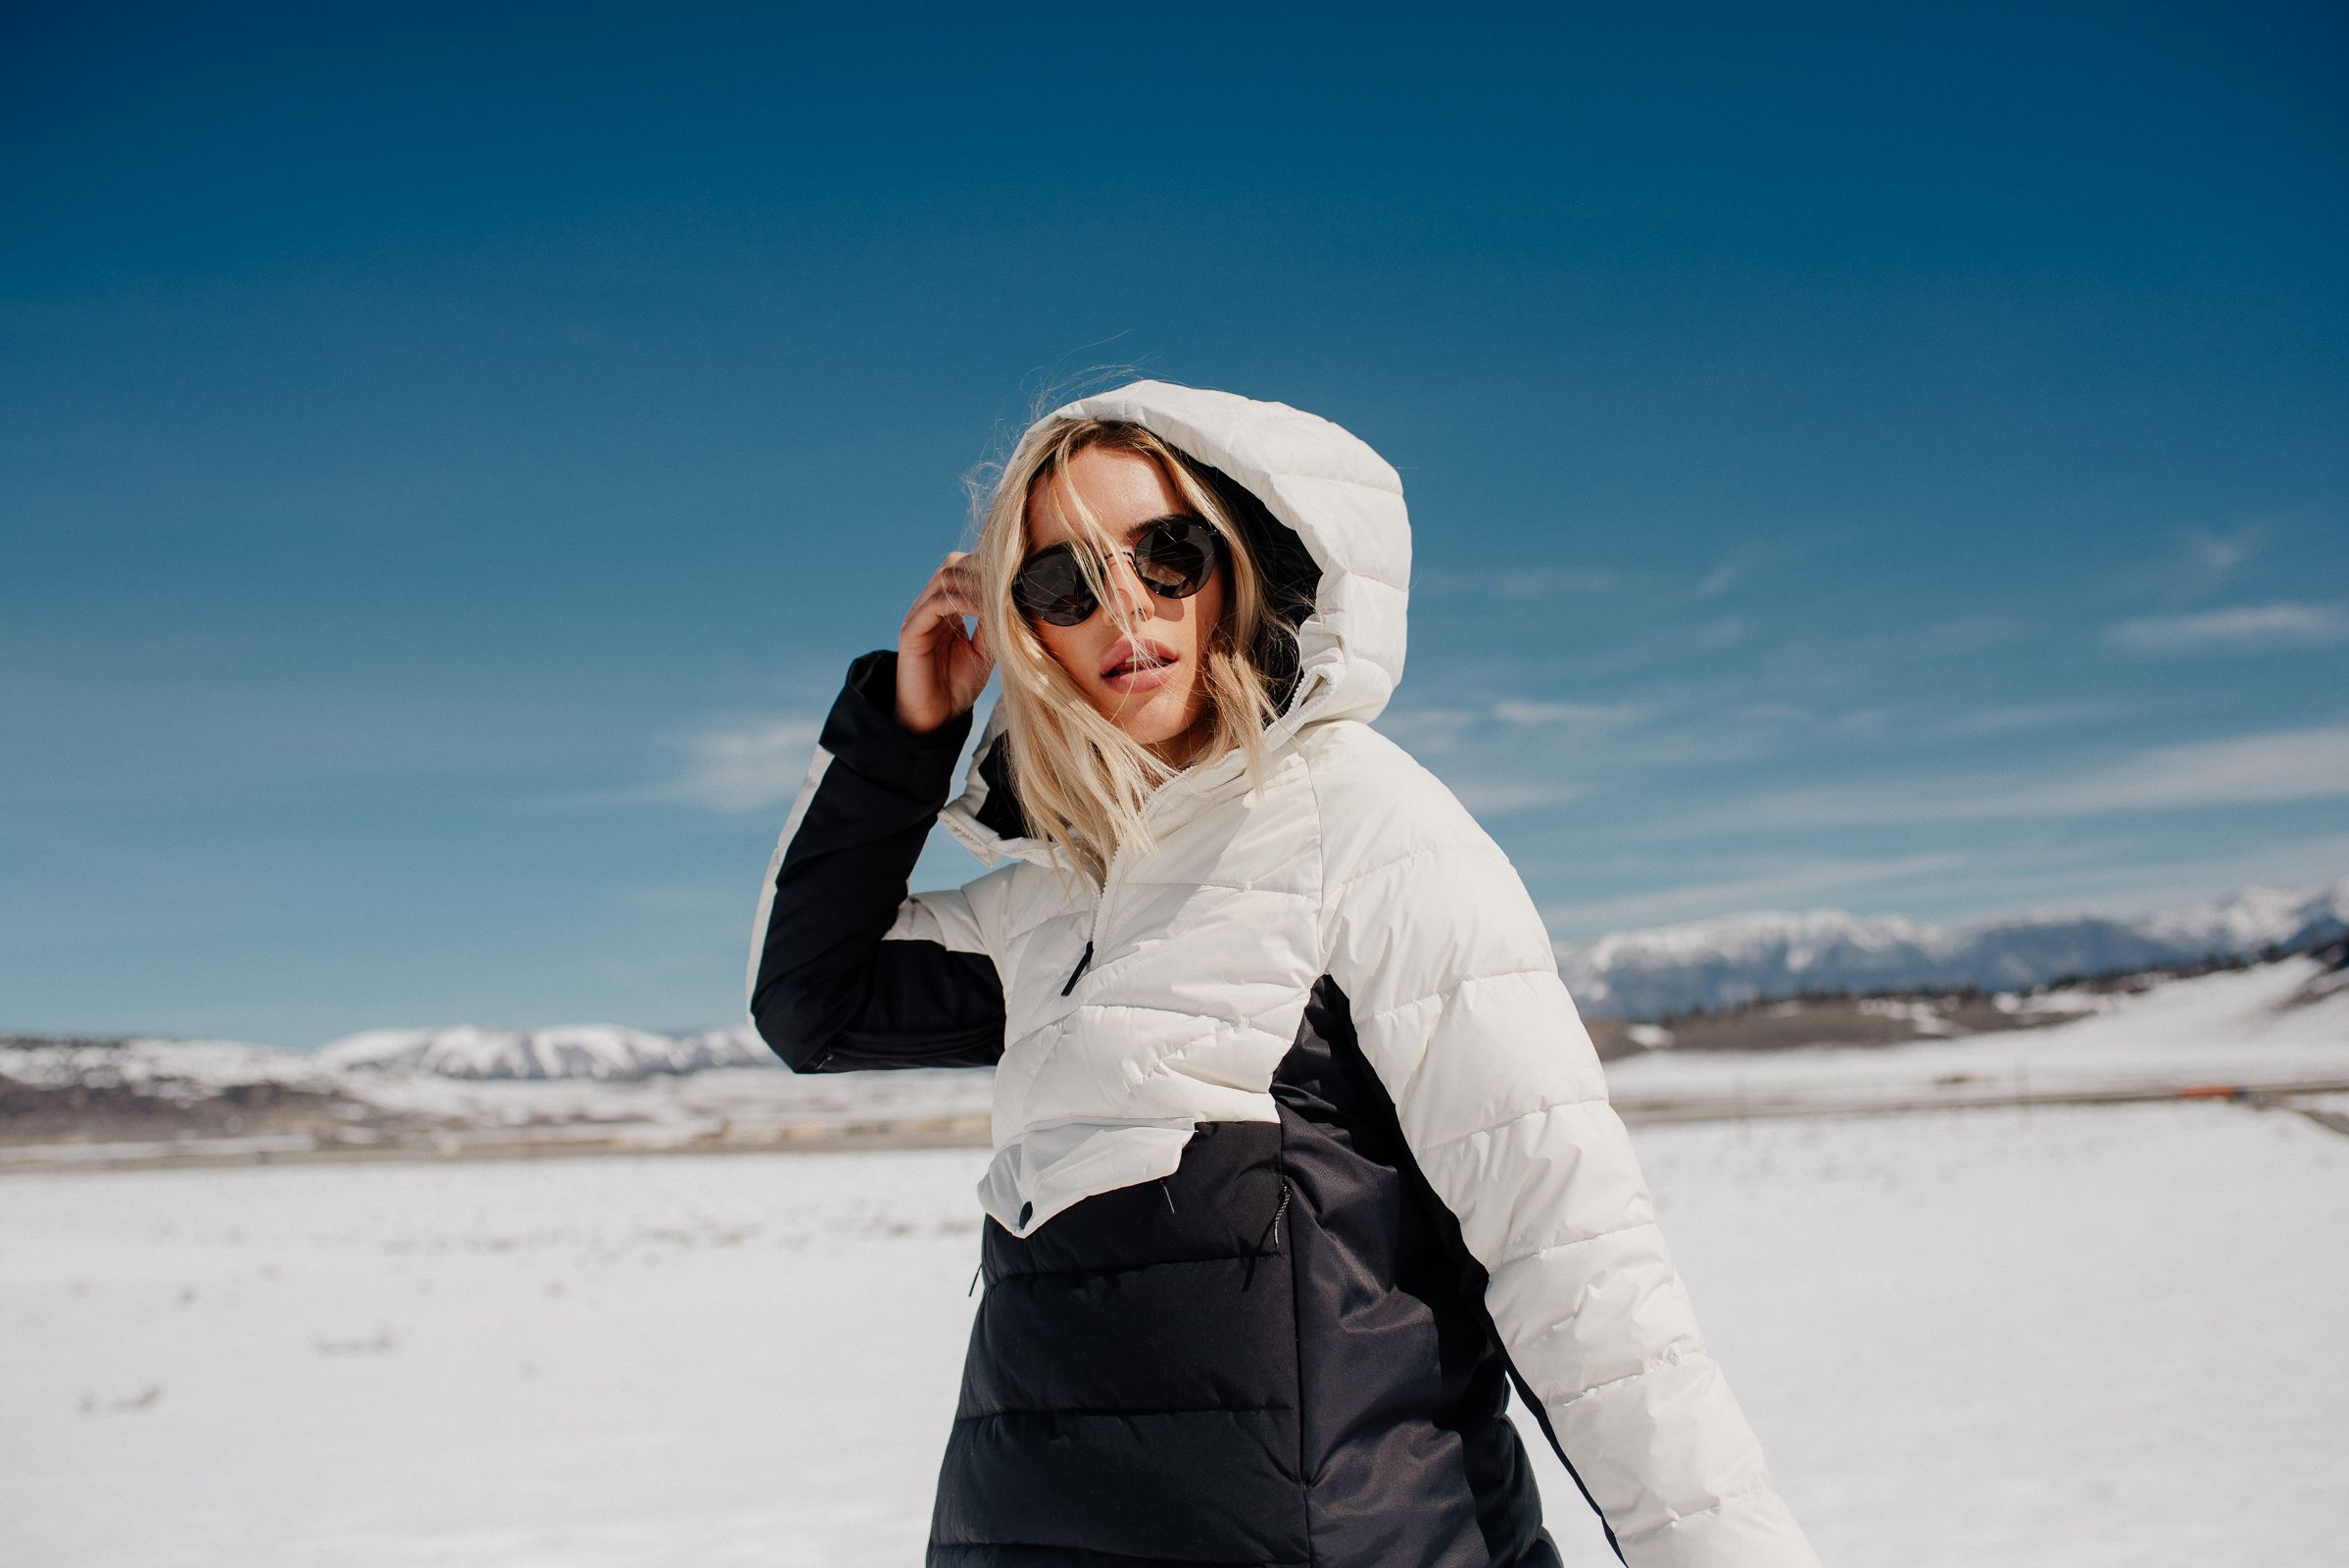 Pin By Holden Outerwear On Holden Fw19 Collection Jackets Puffer Jackets Performance Outfit [ 1600 x 2397 Pixel ]